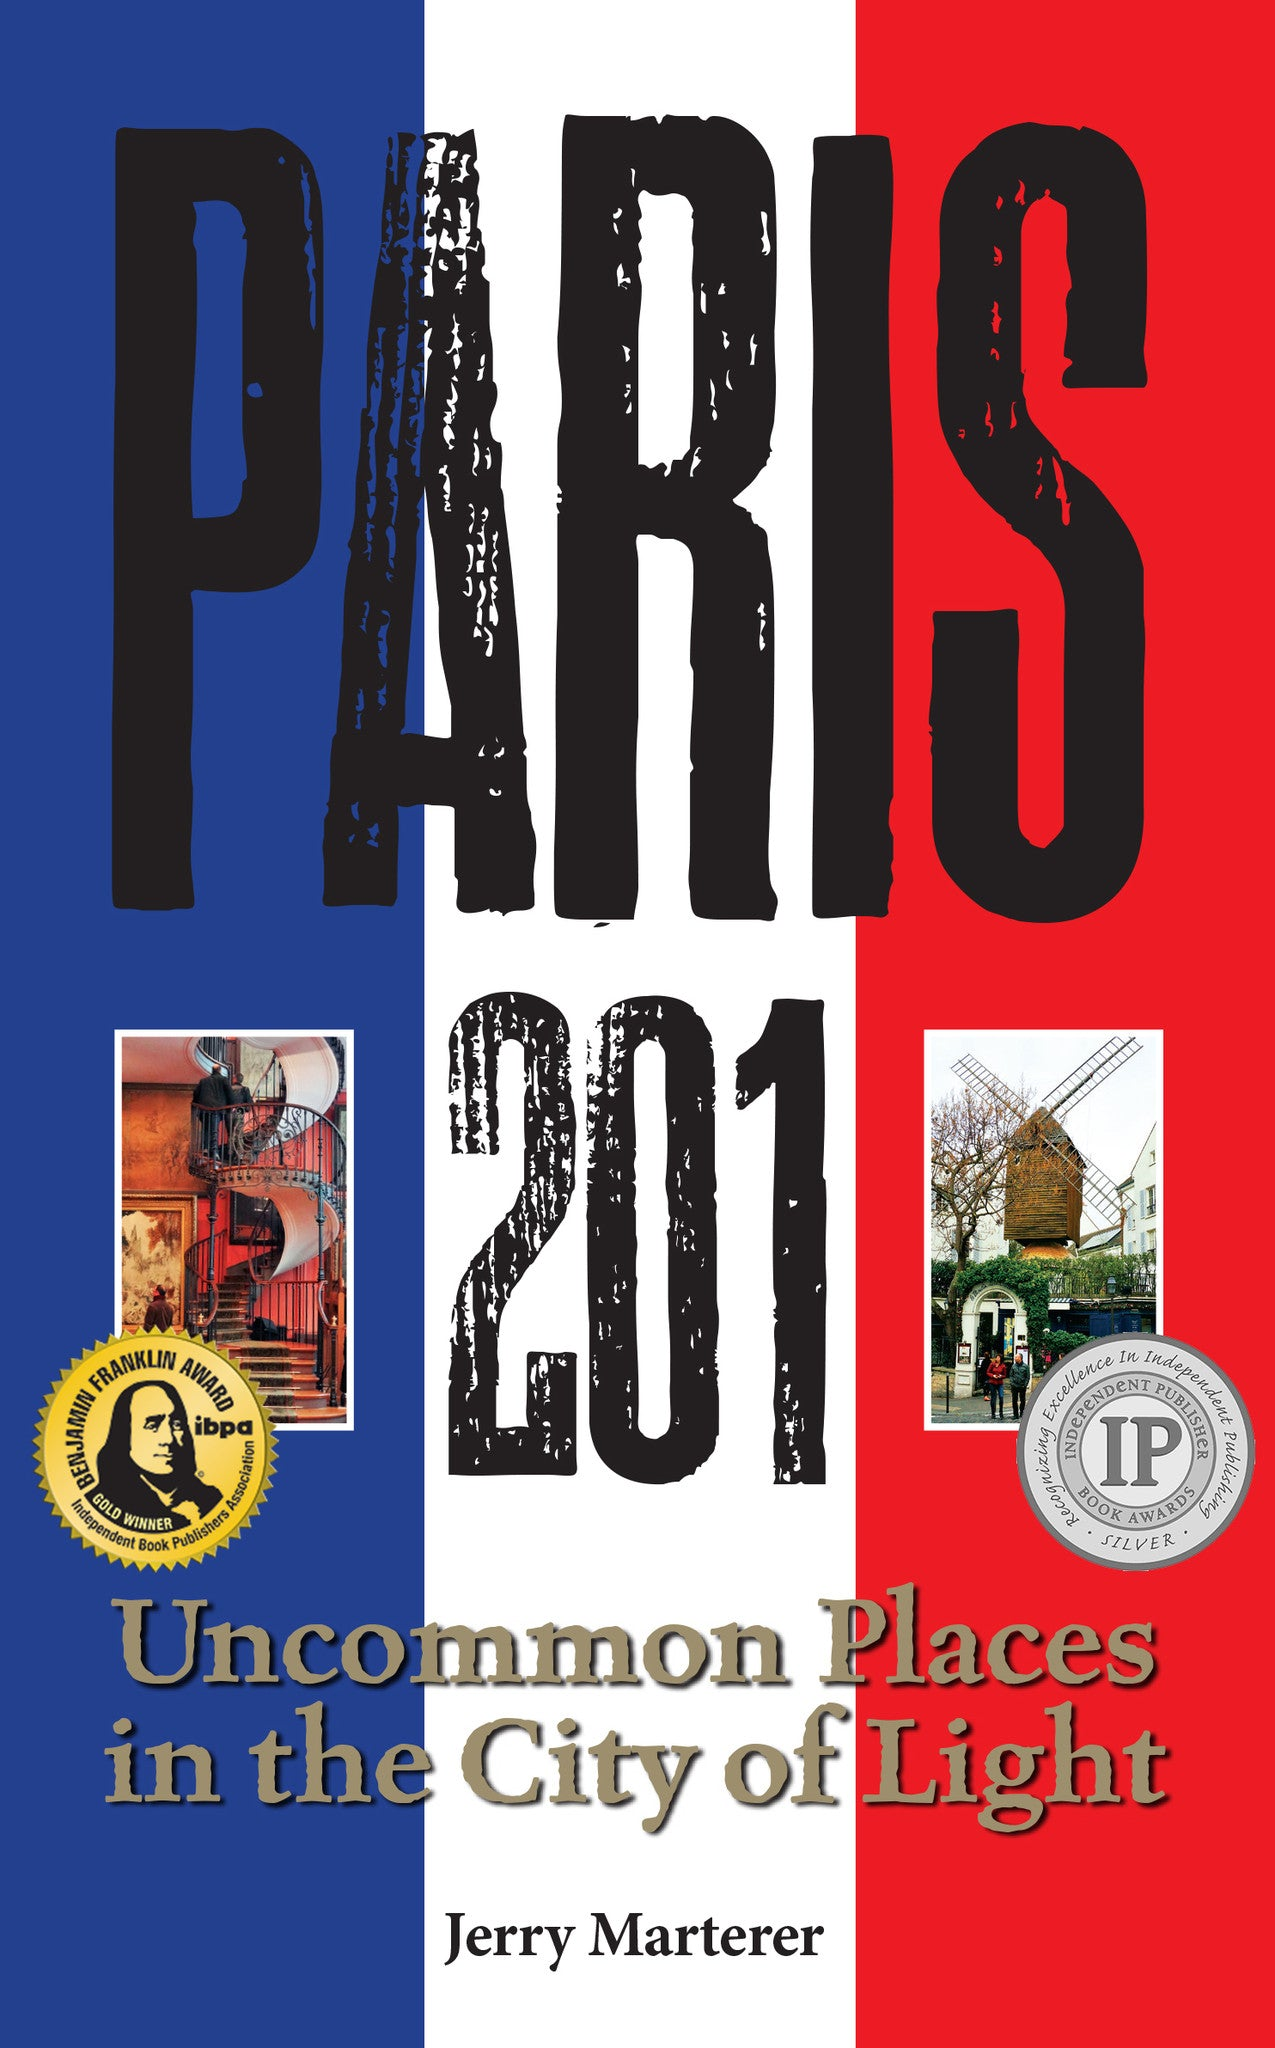 Paris 201: Uncommon Places in the City of Light book by Jerry Materer and Starbooks